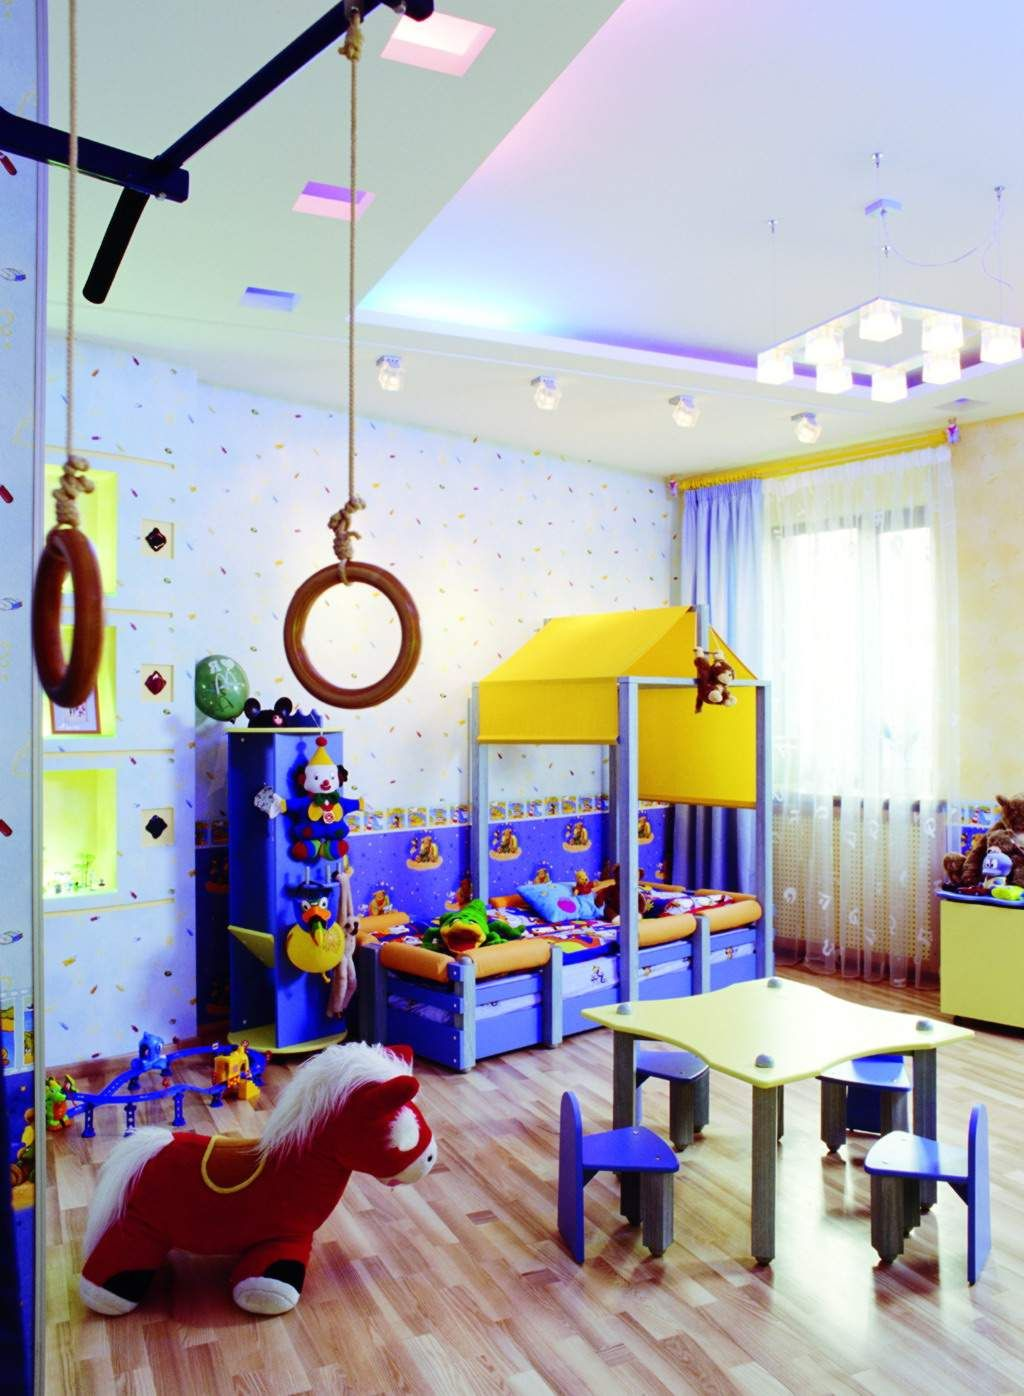 Kids Bedroom Kids Room Interior Design With Play And Learn Area Kids Room Design With Wallpaper